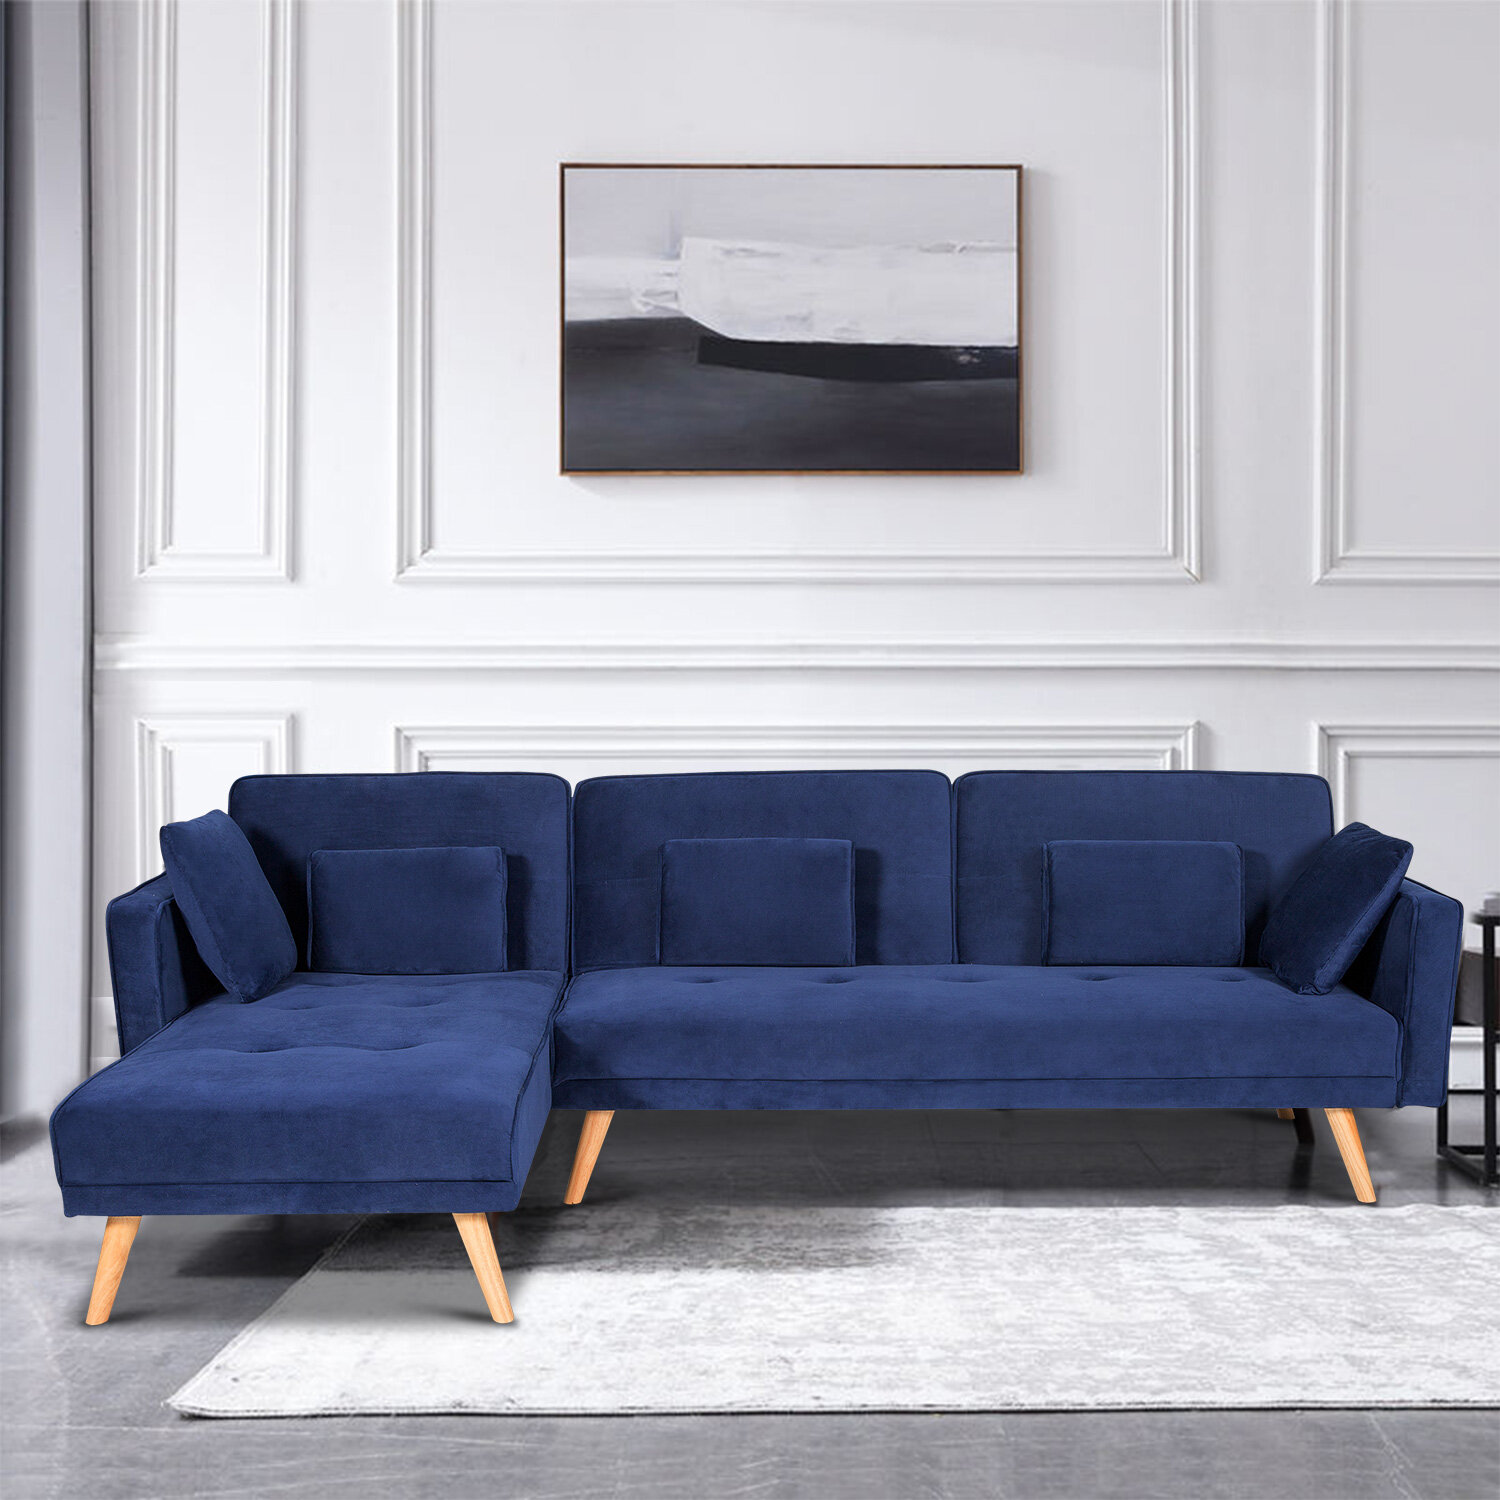 Corrigan Studio 3 Person Sofa Sectional Couch Sofa For Living Room L Shaped Sofa Sleep Sofa Bed Convertible Sleeper Couch Bed Chaise Lounge 4 Seat Modern Mid Century Sofa Blue Wayfair Ca